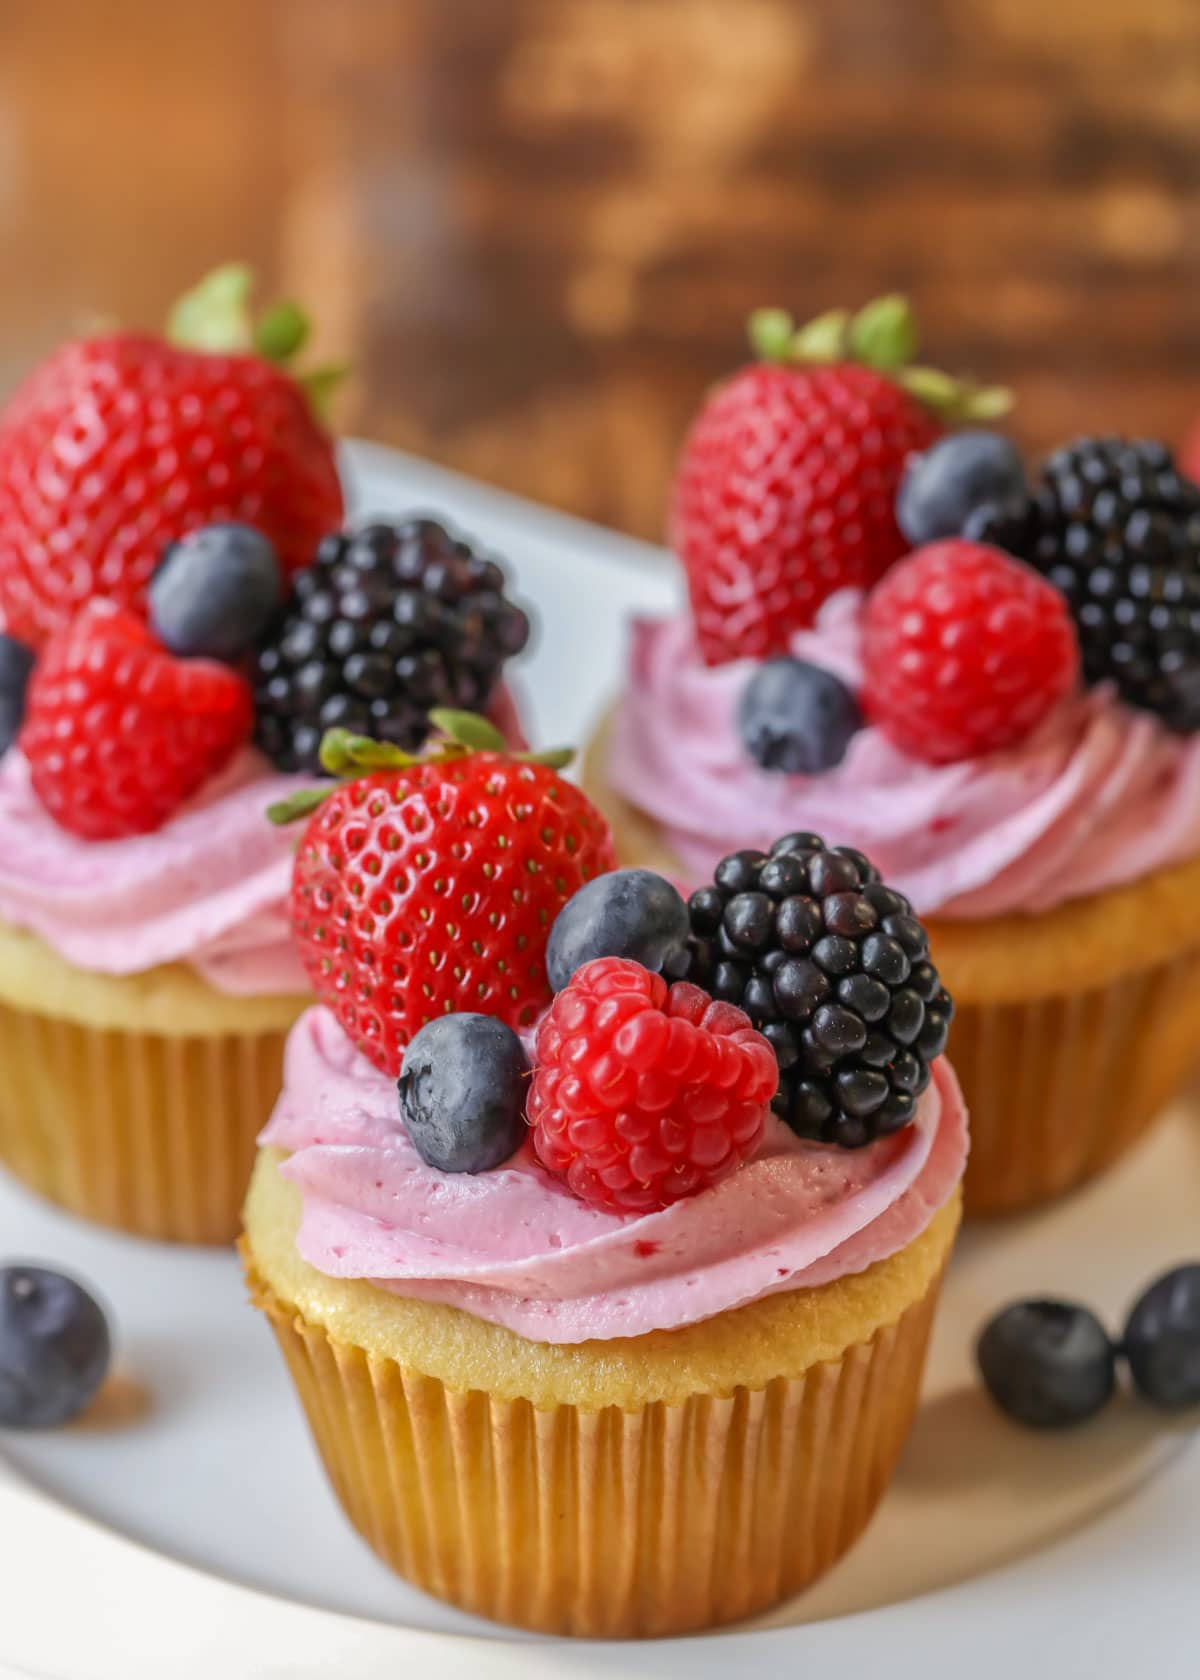 Cupcakes topped with berry frosting and fresh berries